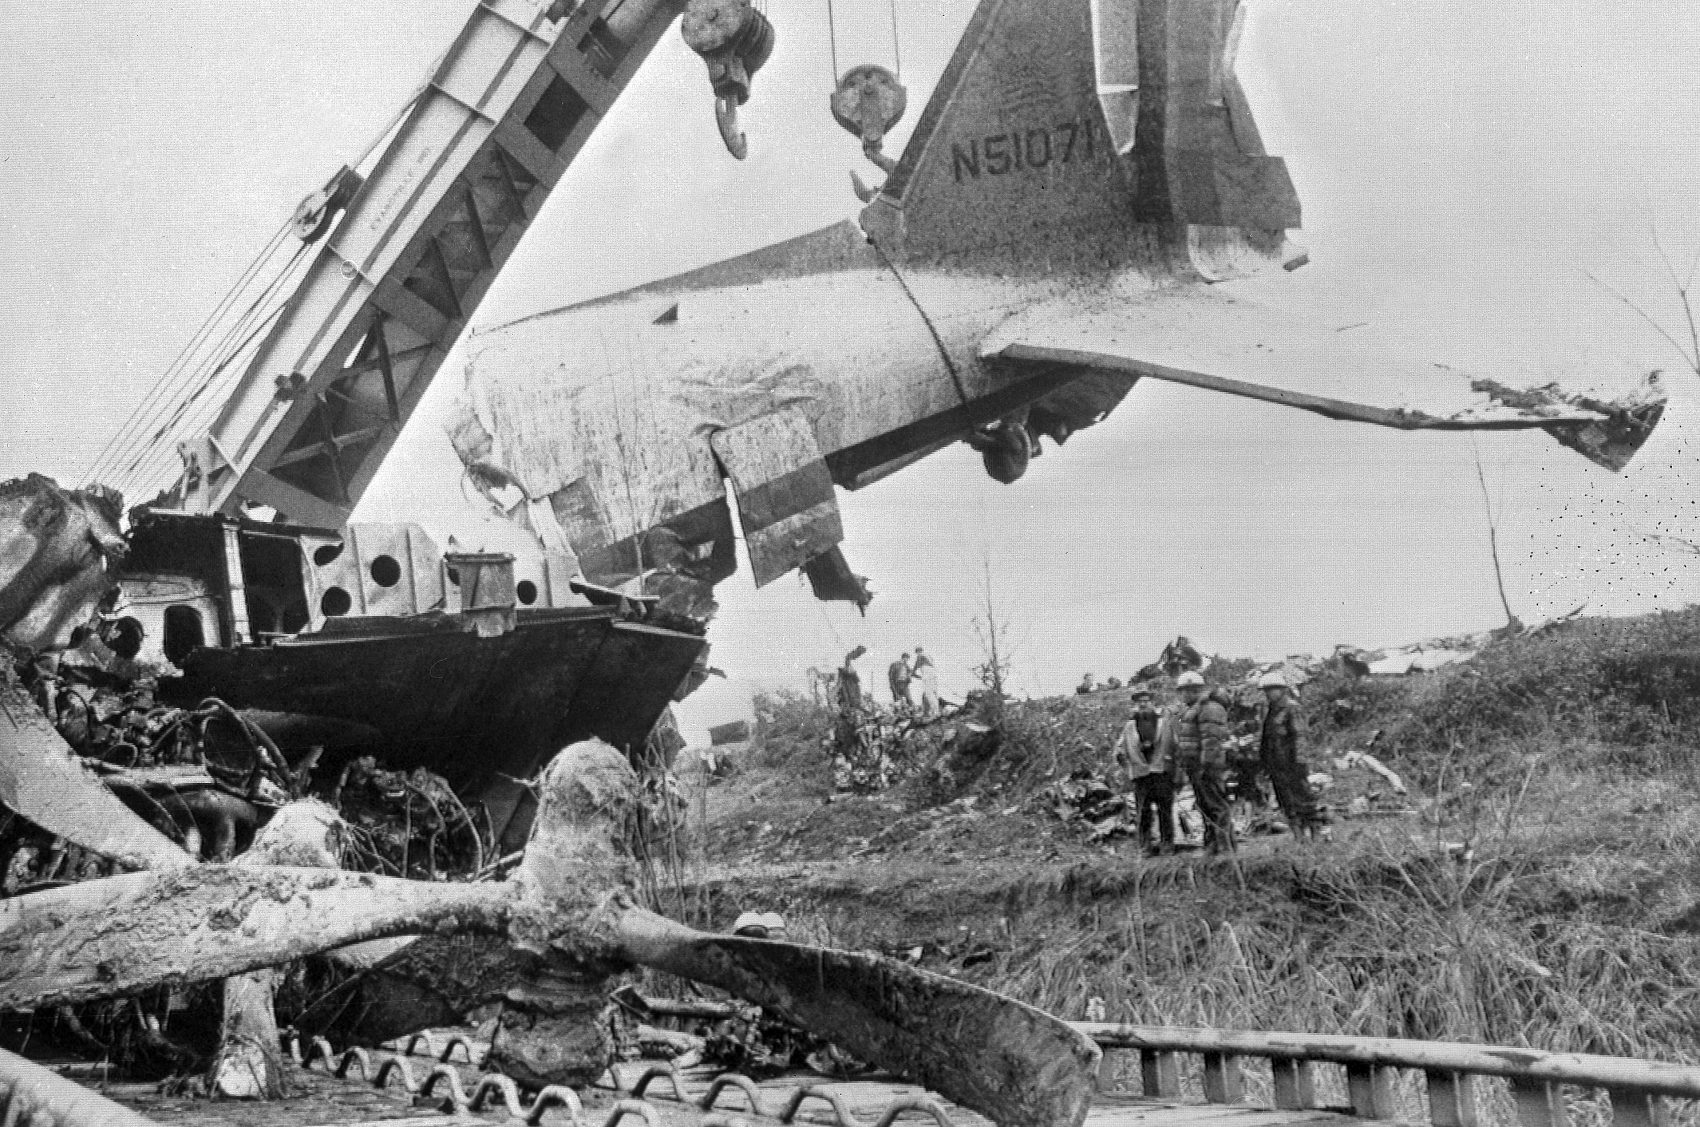 40 Years Ago, A Deadly Plane Crash 'Tore At The Fabric' Of